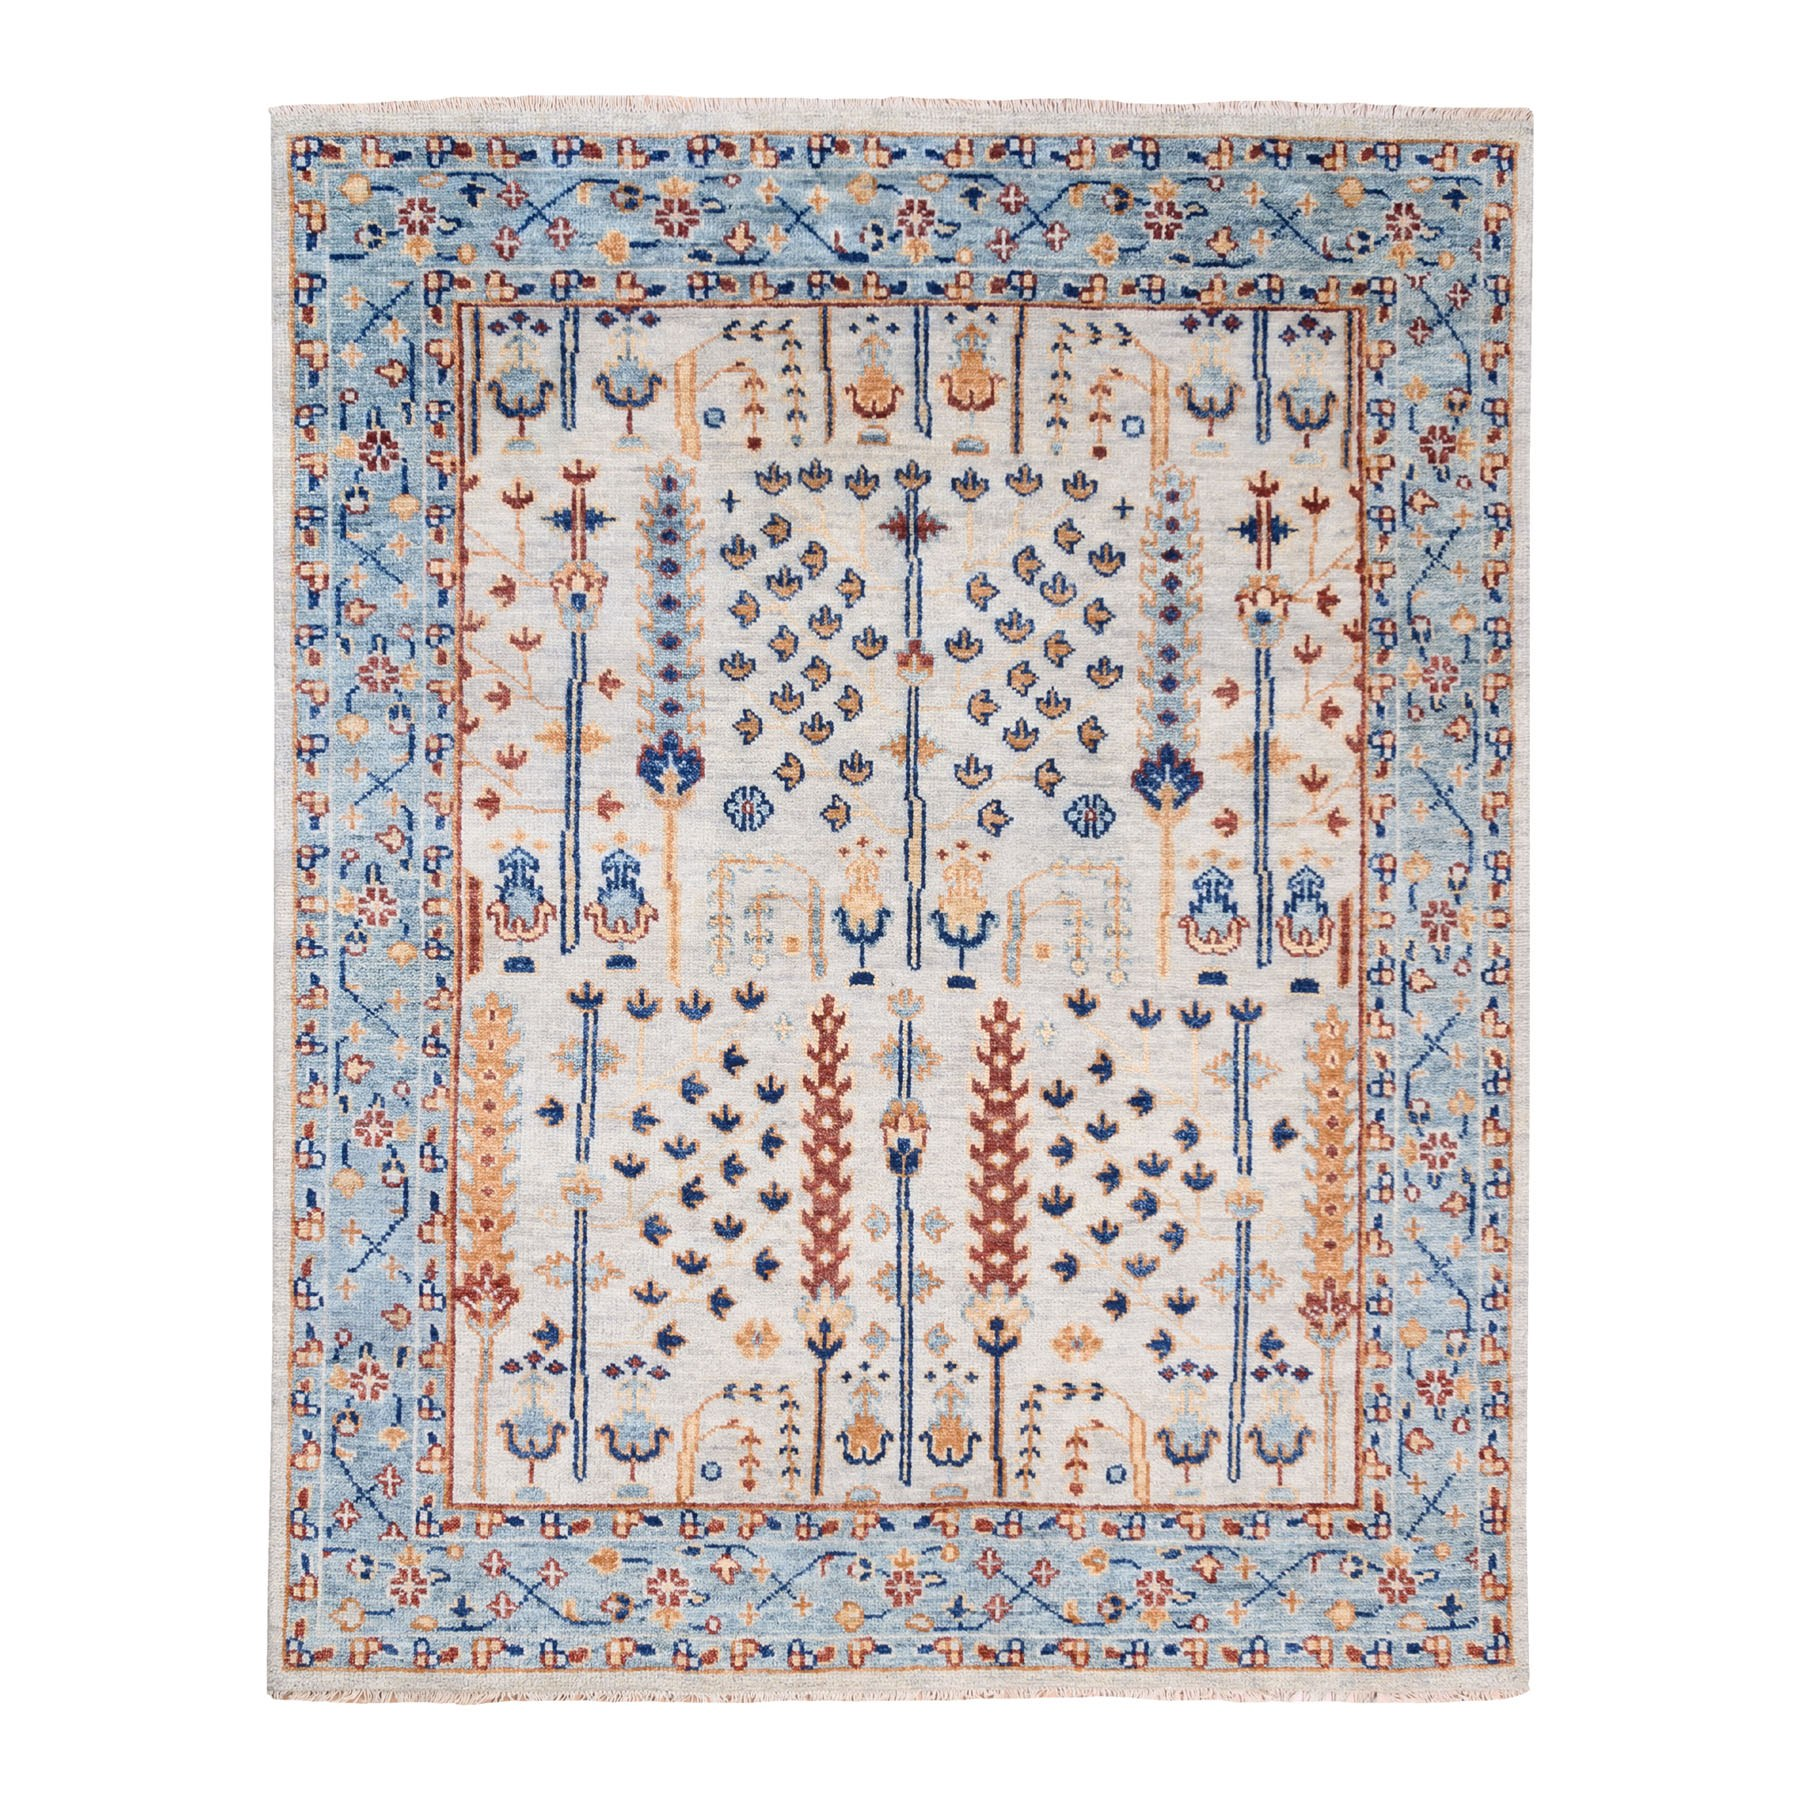 Tribal & Geometric Rugs LUV559809